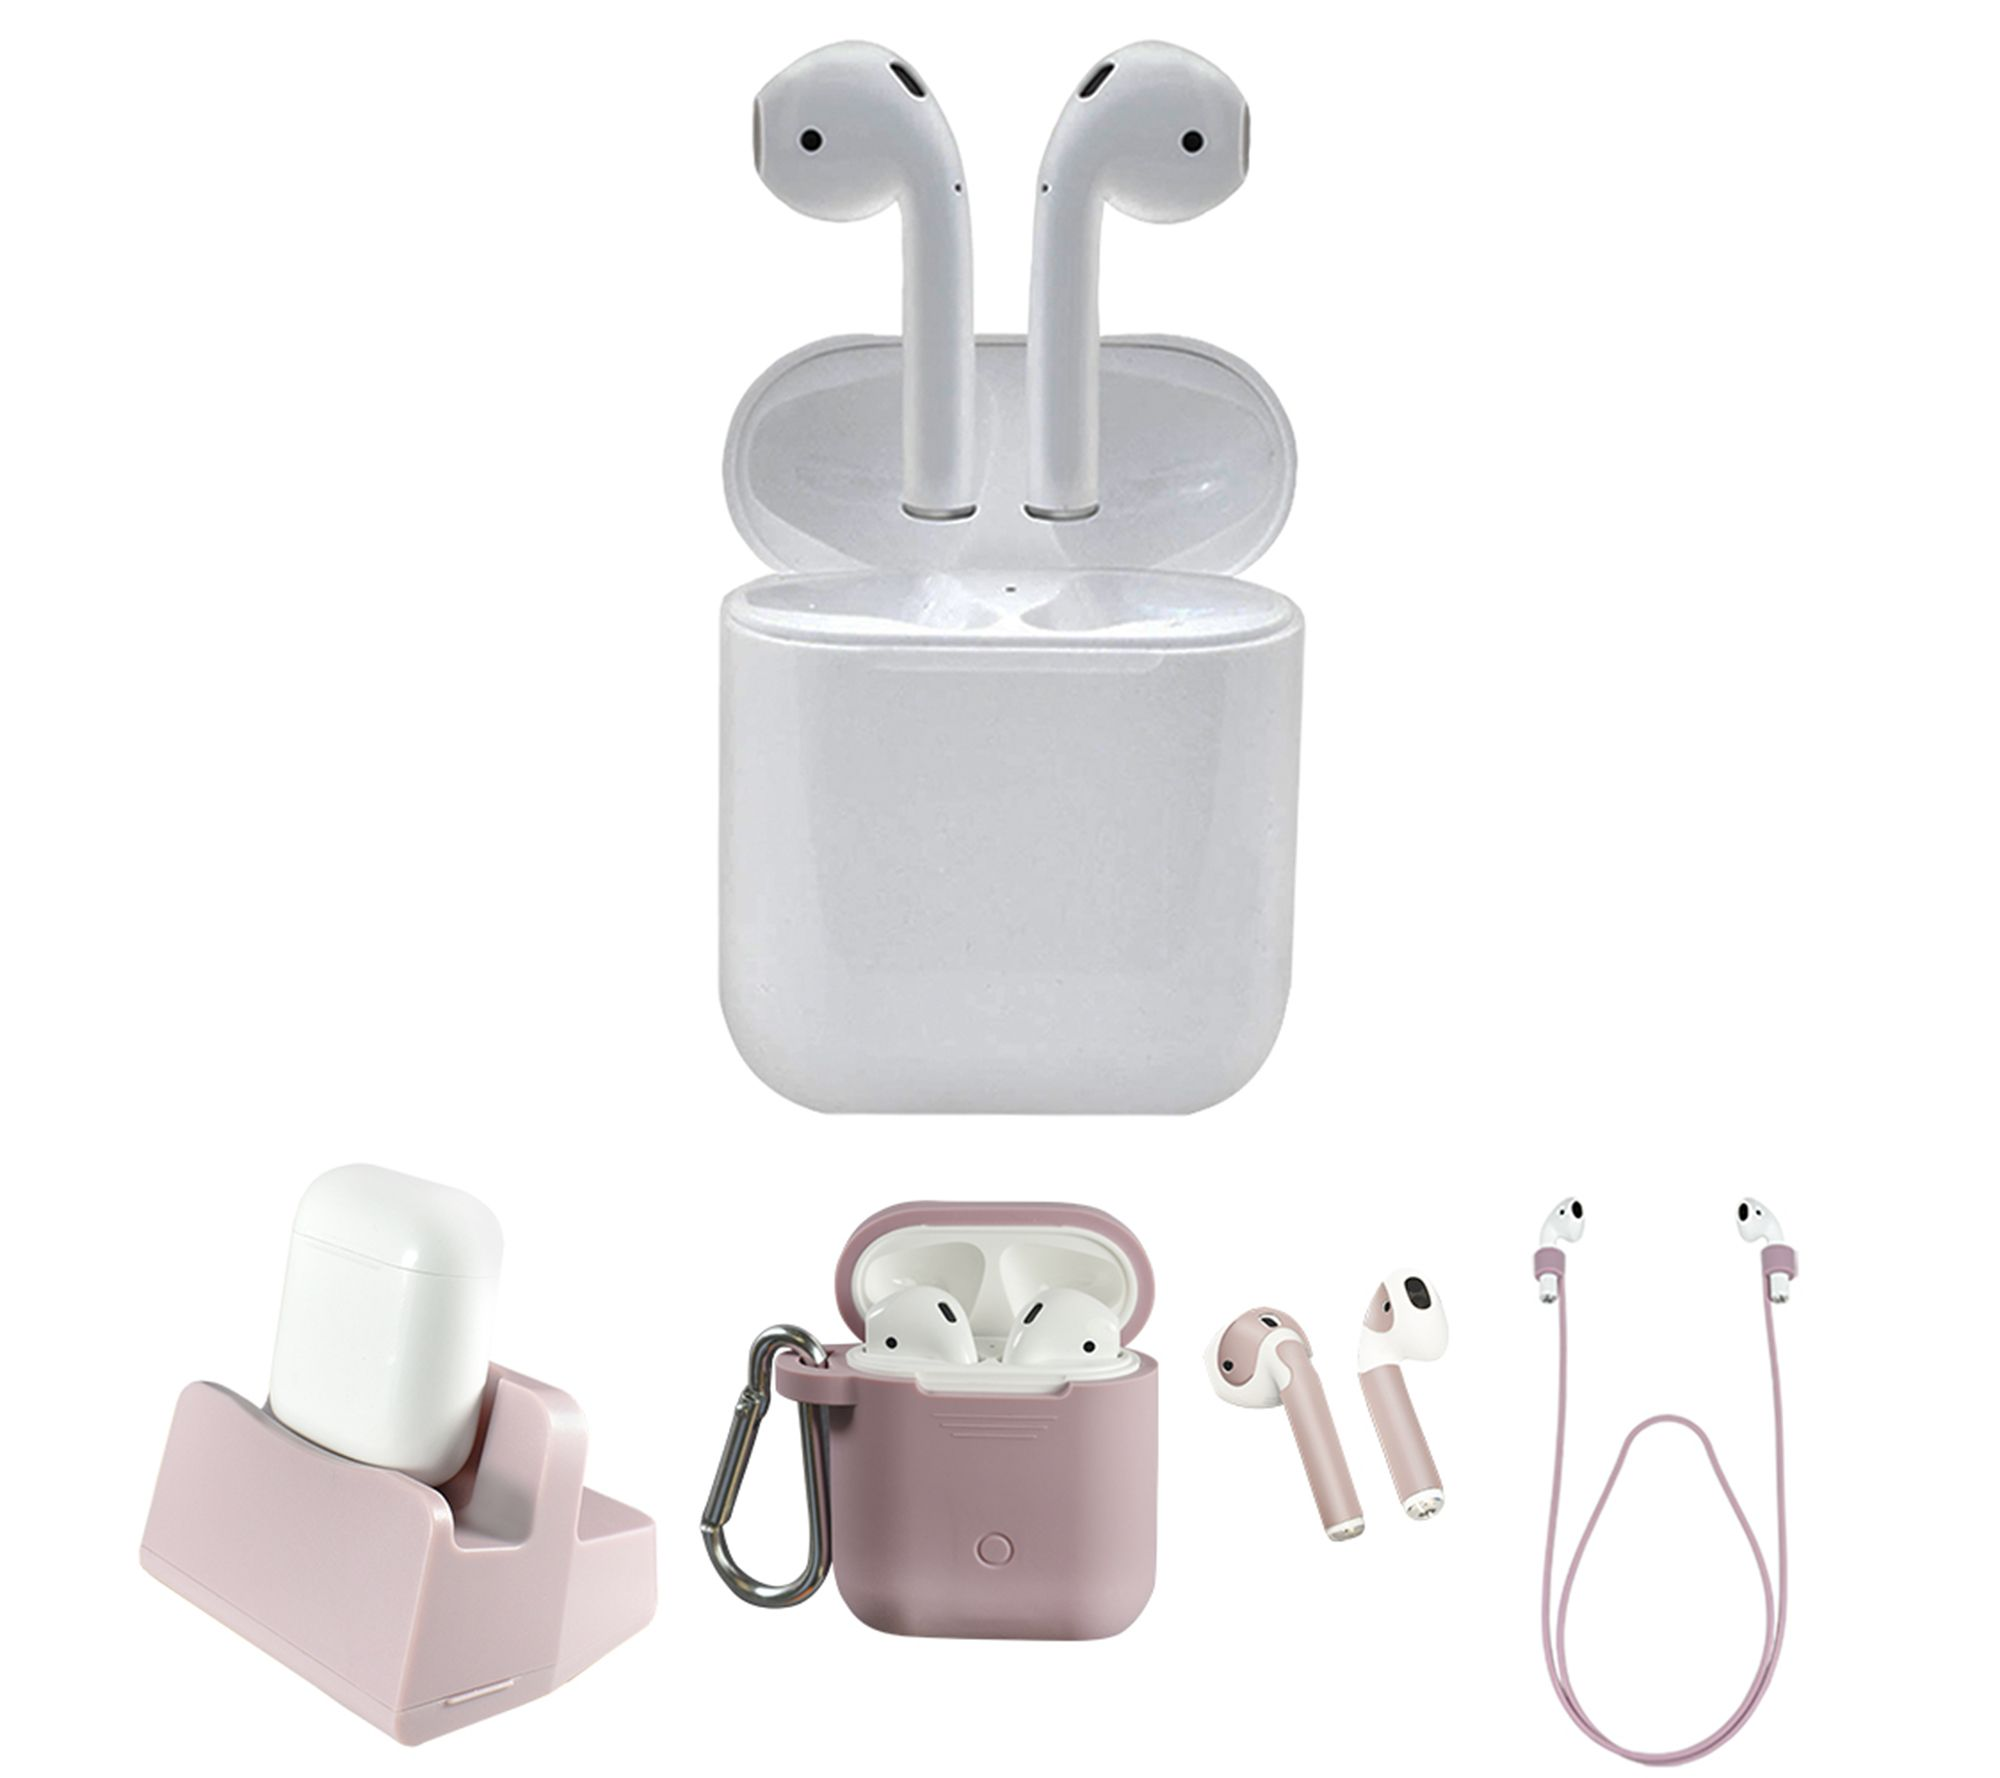 Apple Airpods 2nd Generation With Wired Charging Case